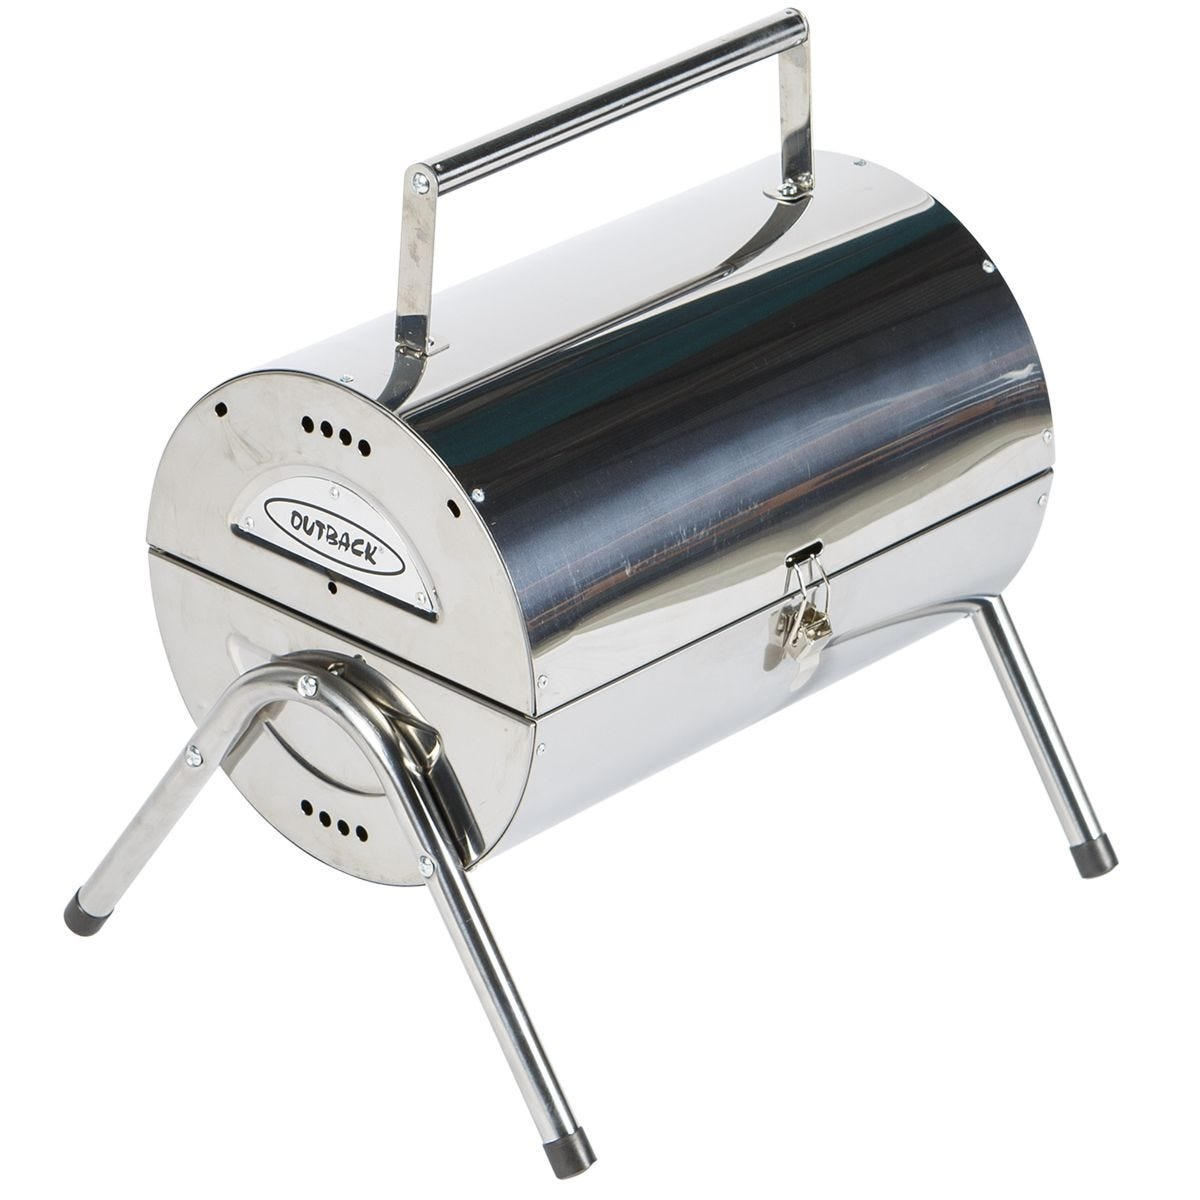 Outback Portable Stainless Steel Charcoal BBQ